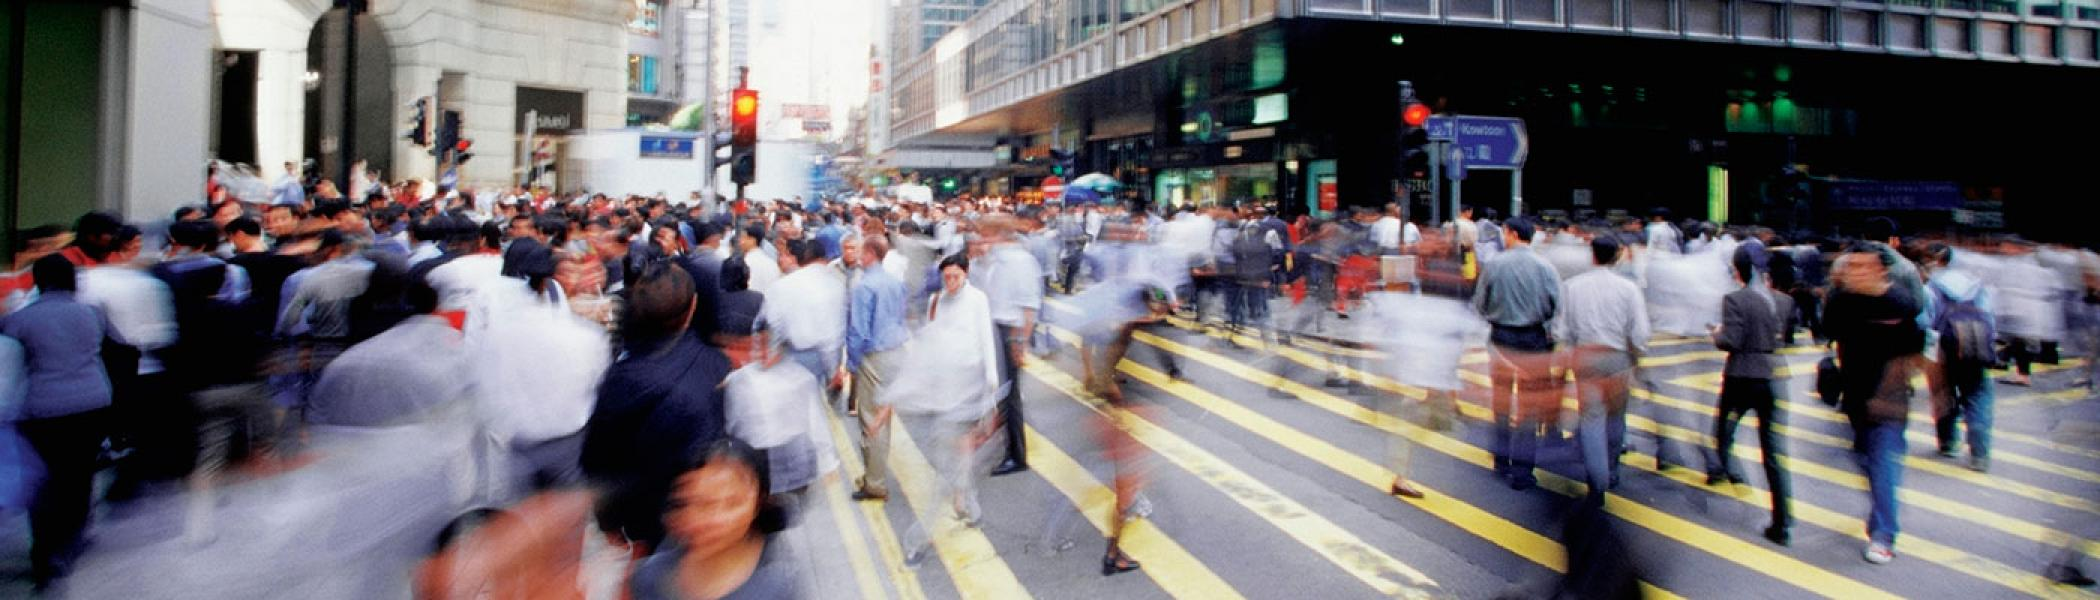 People walking across a busy street, out of focus